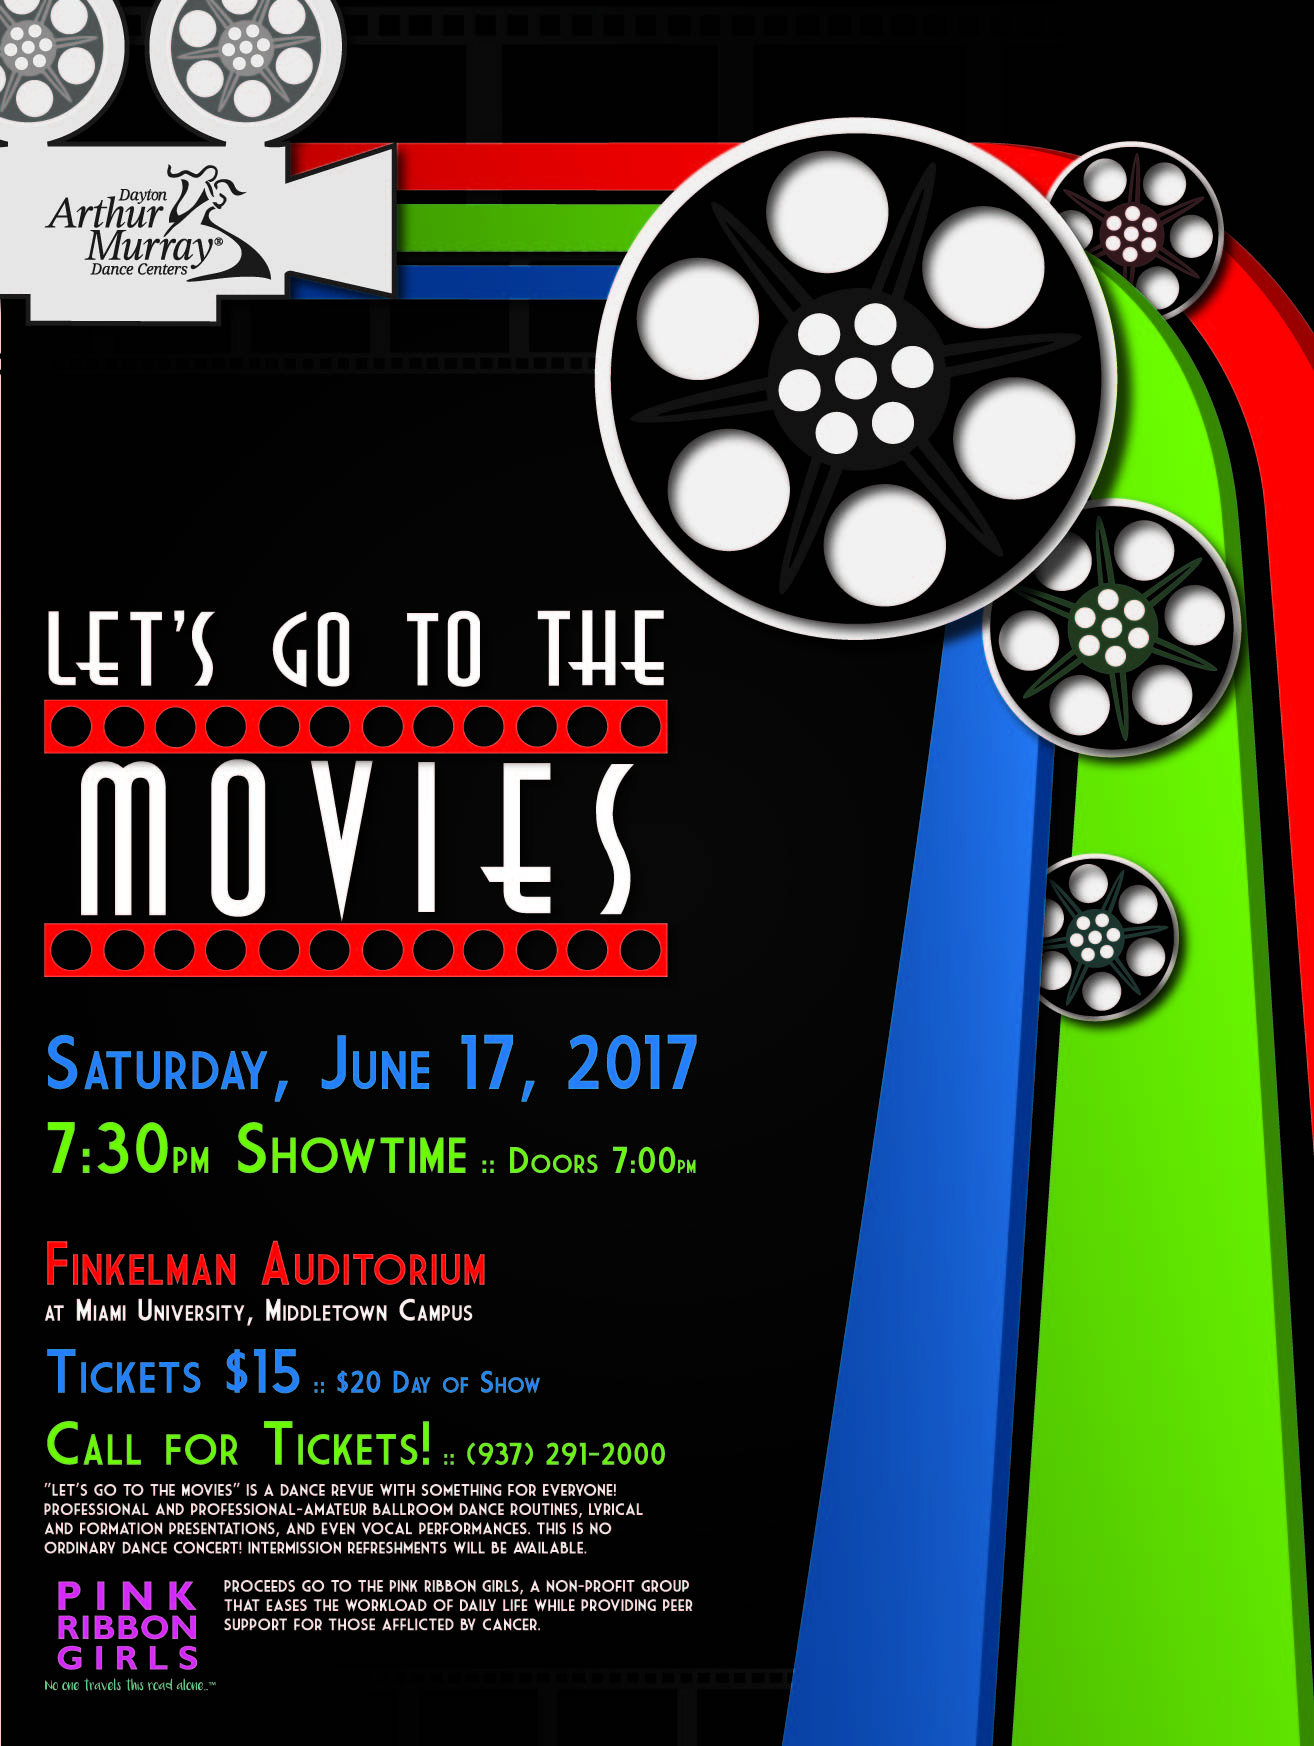 Promotional poster for Let's Go to the Movies event